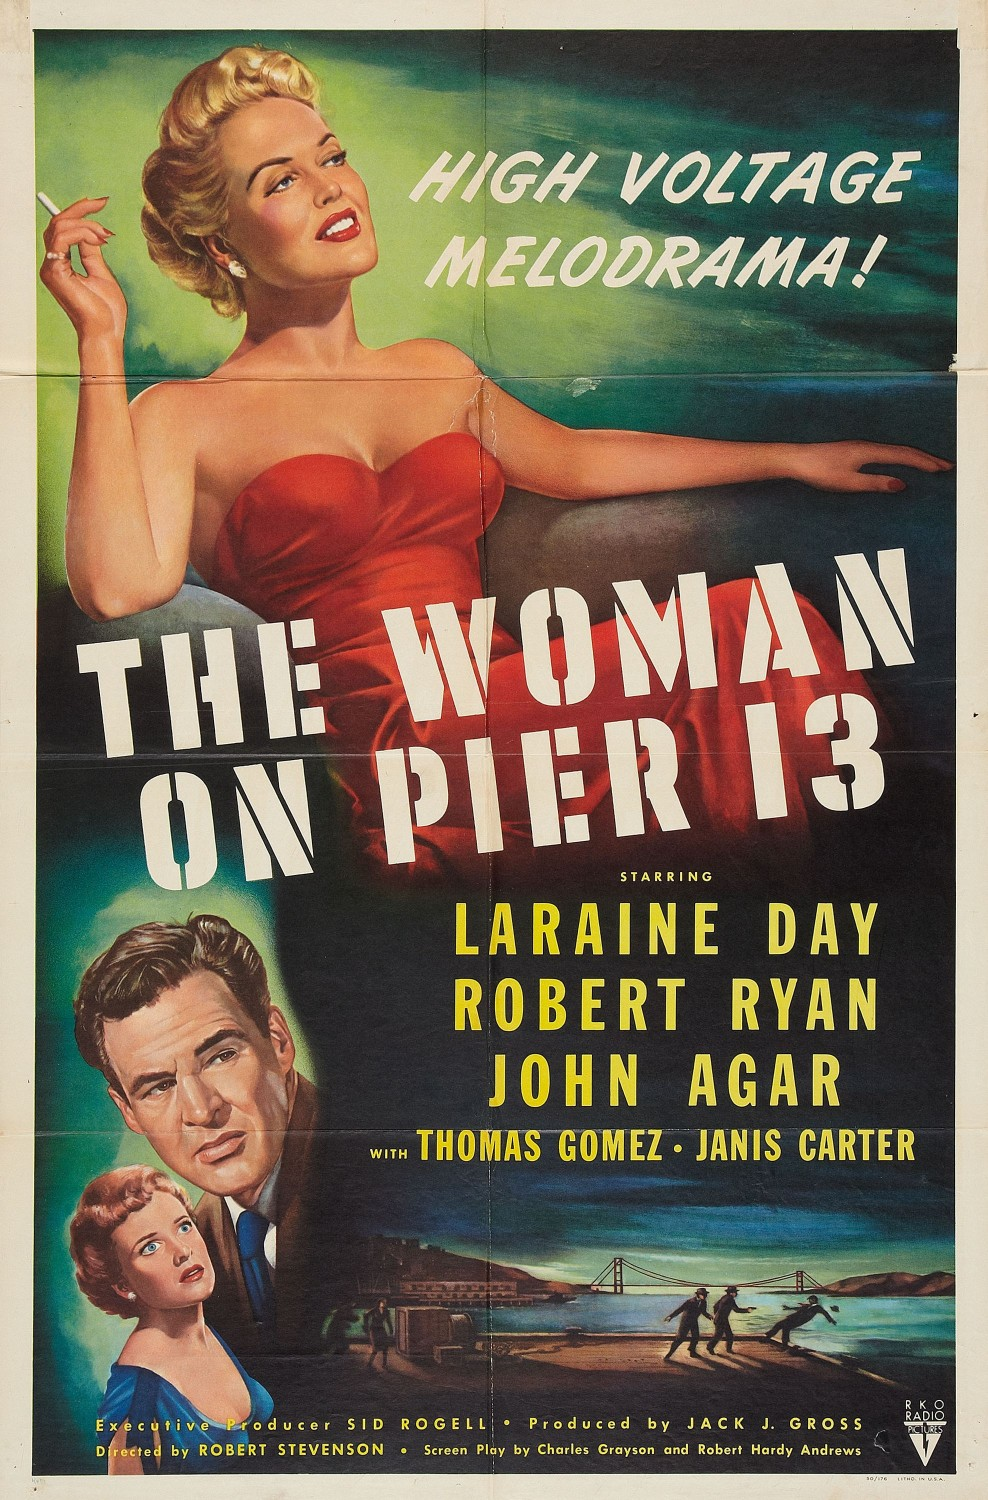 The Woman on Pier 13 (1950)